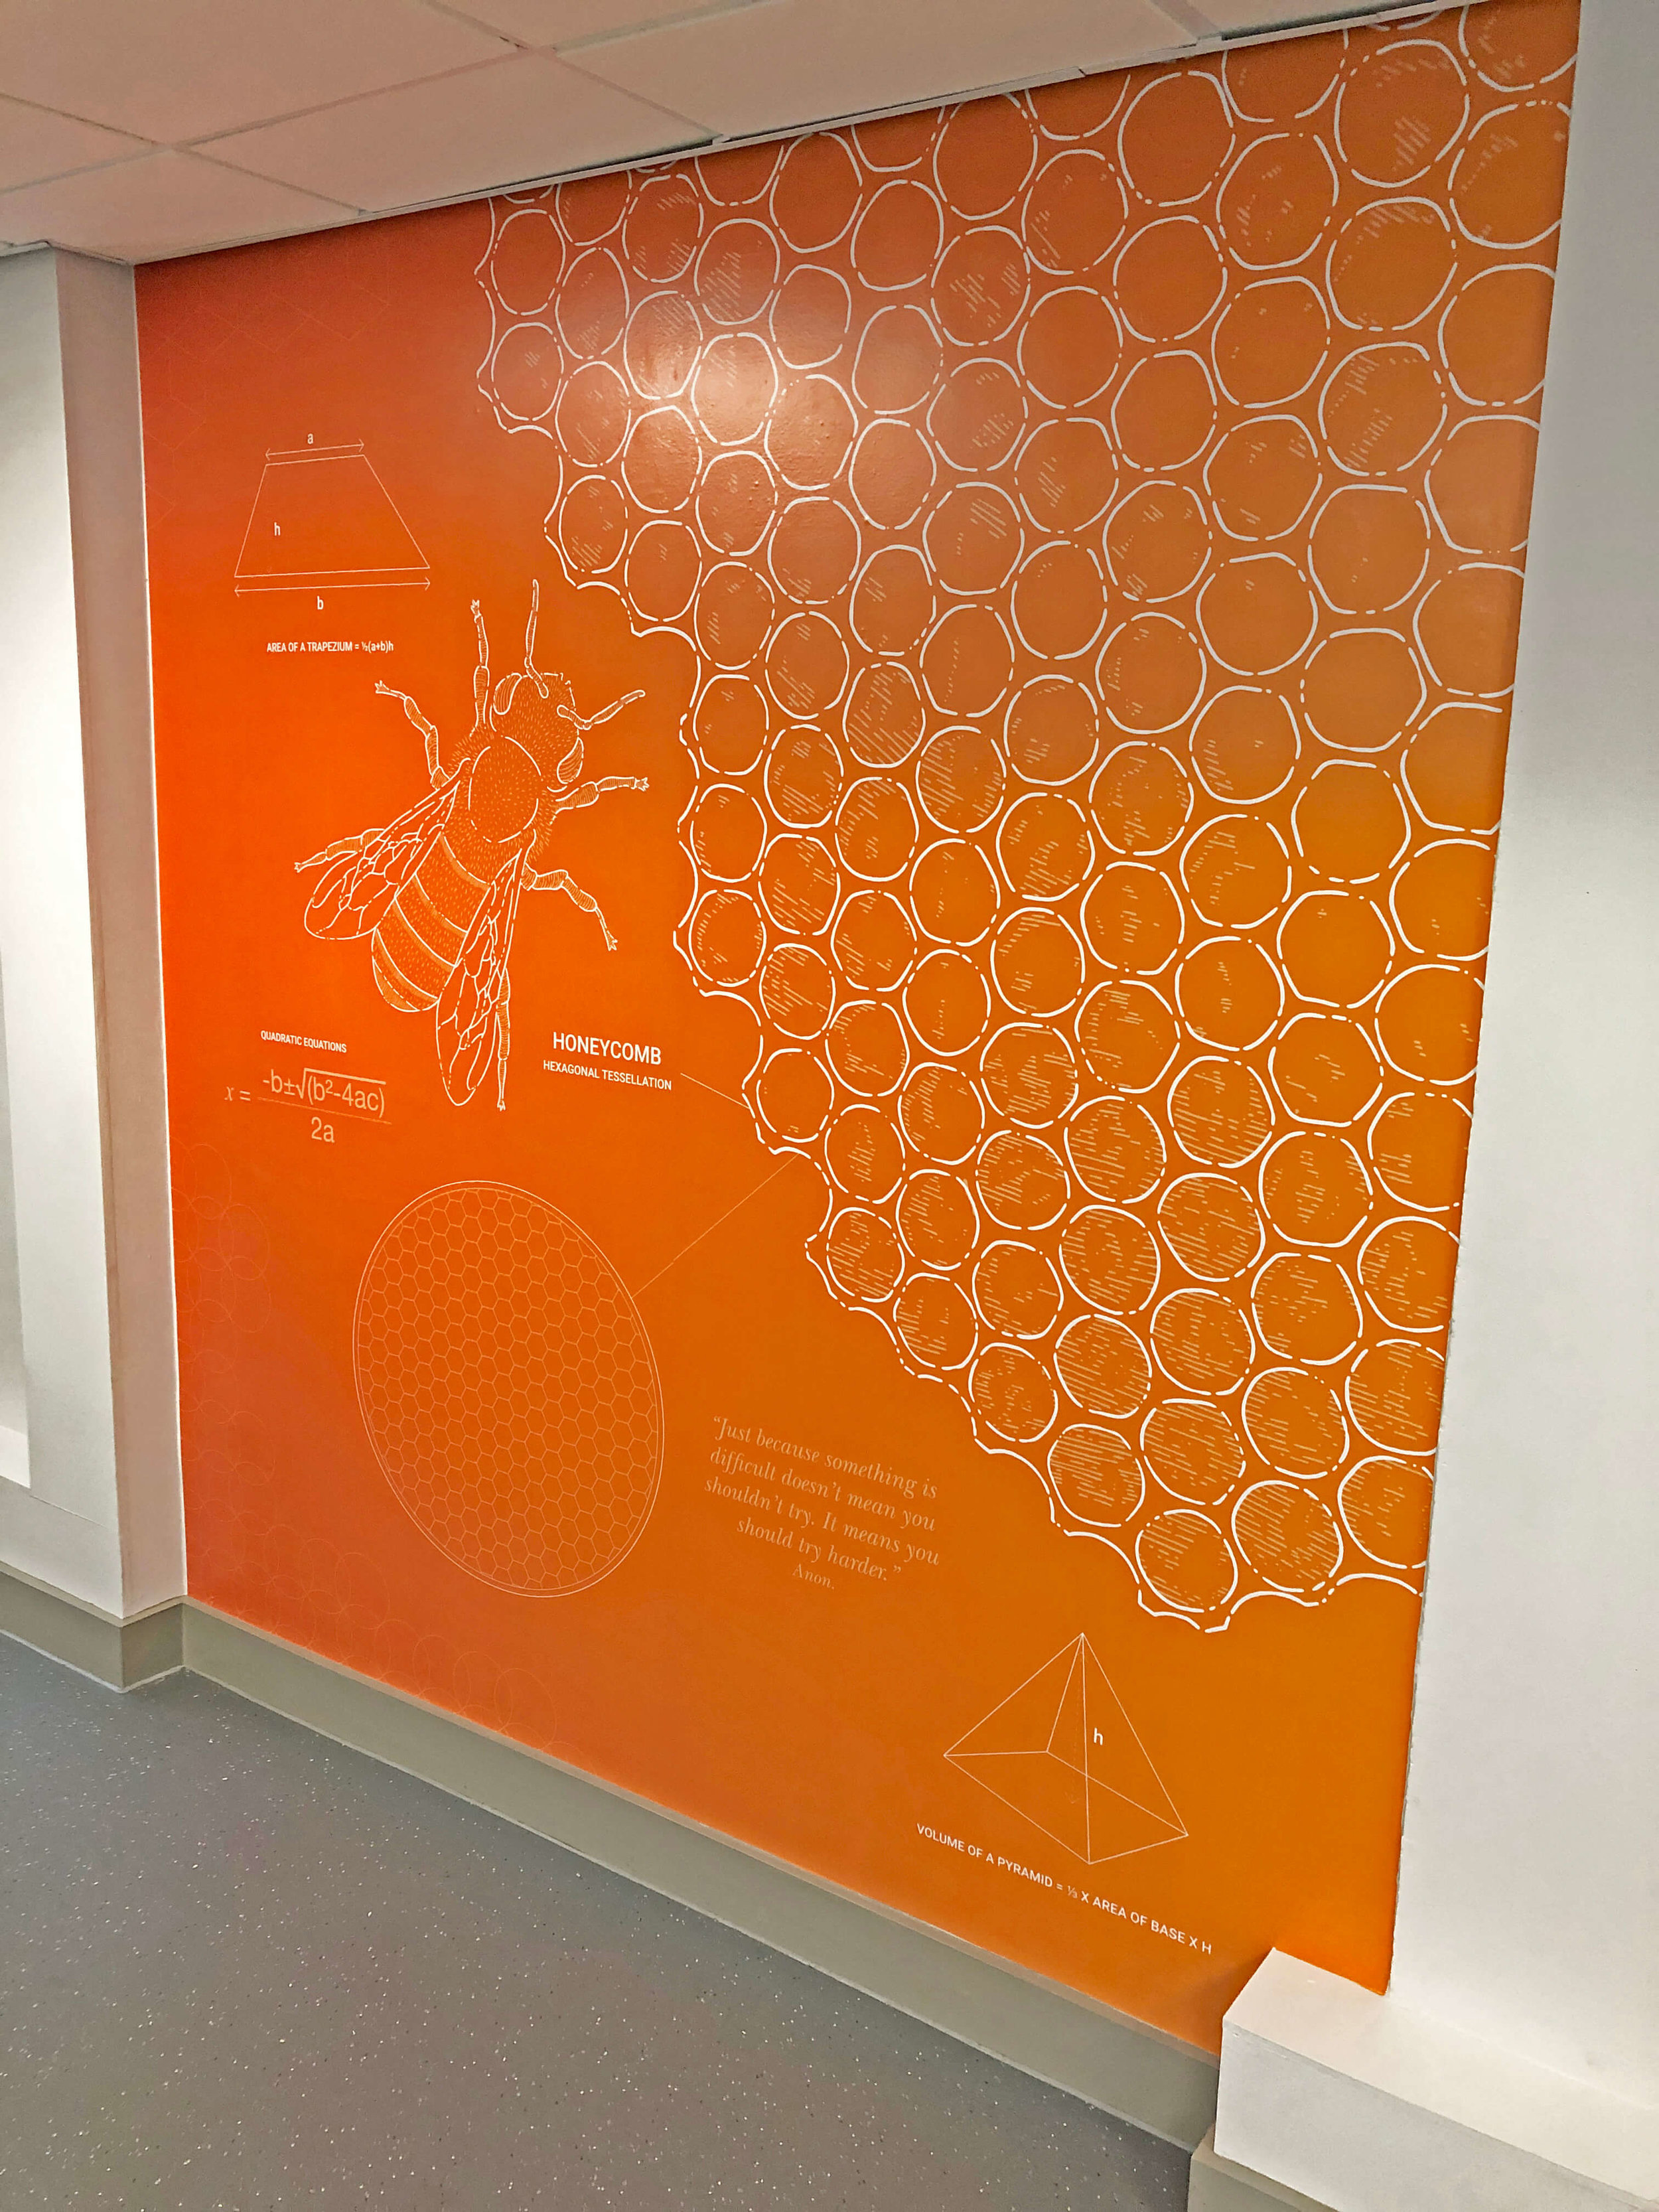 Amaing mathematics wall display | School wall art | Birmingham, Coventry, Midlands, UK